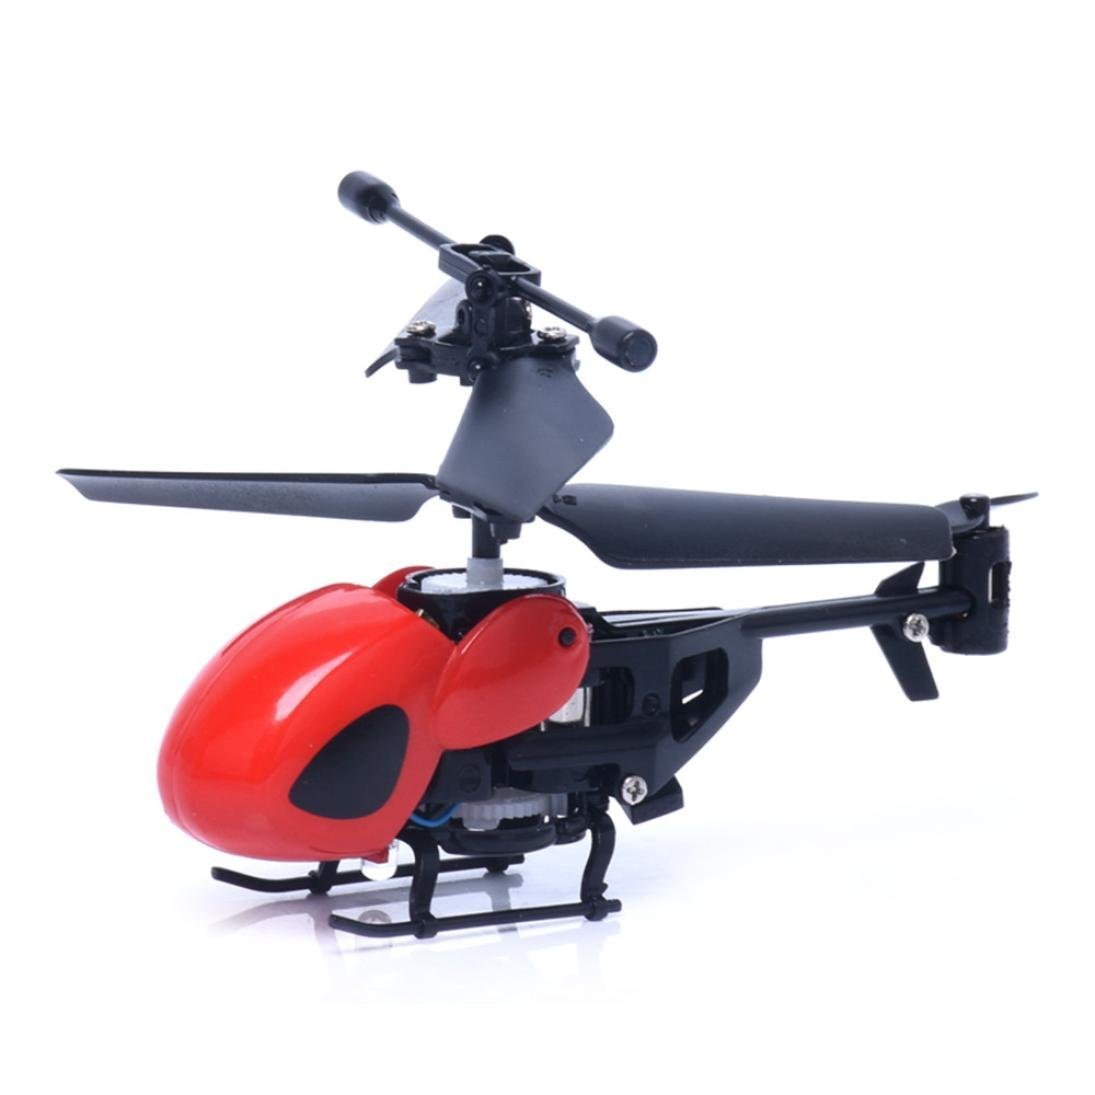 RC Helicopter, Lookatool RC 2CH Mini rc helicopter Radio Remote Control Aircraft Micro 2 Channel, Red